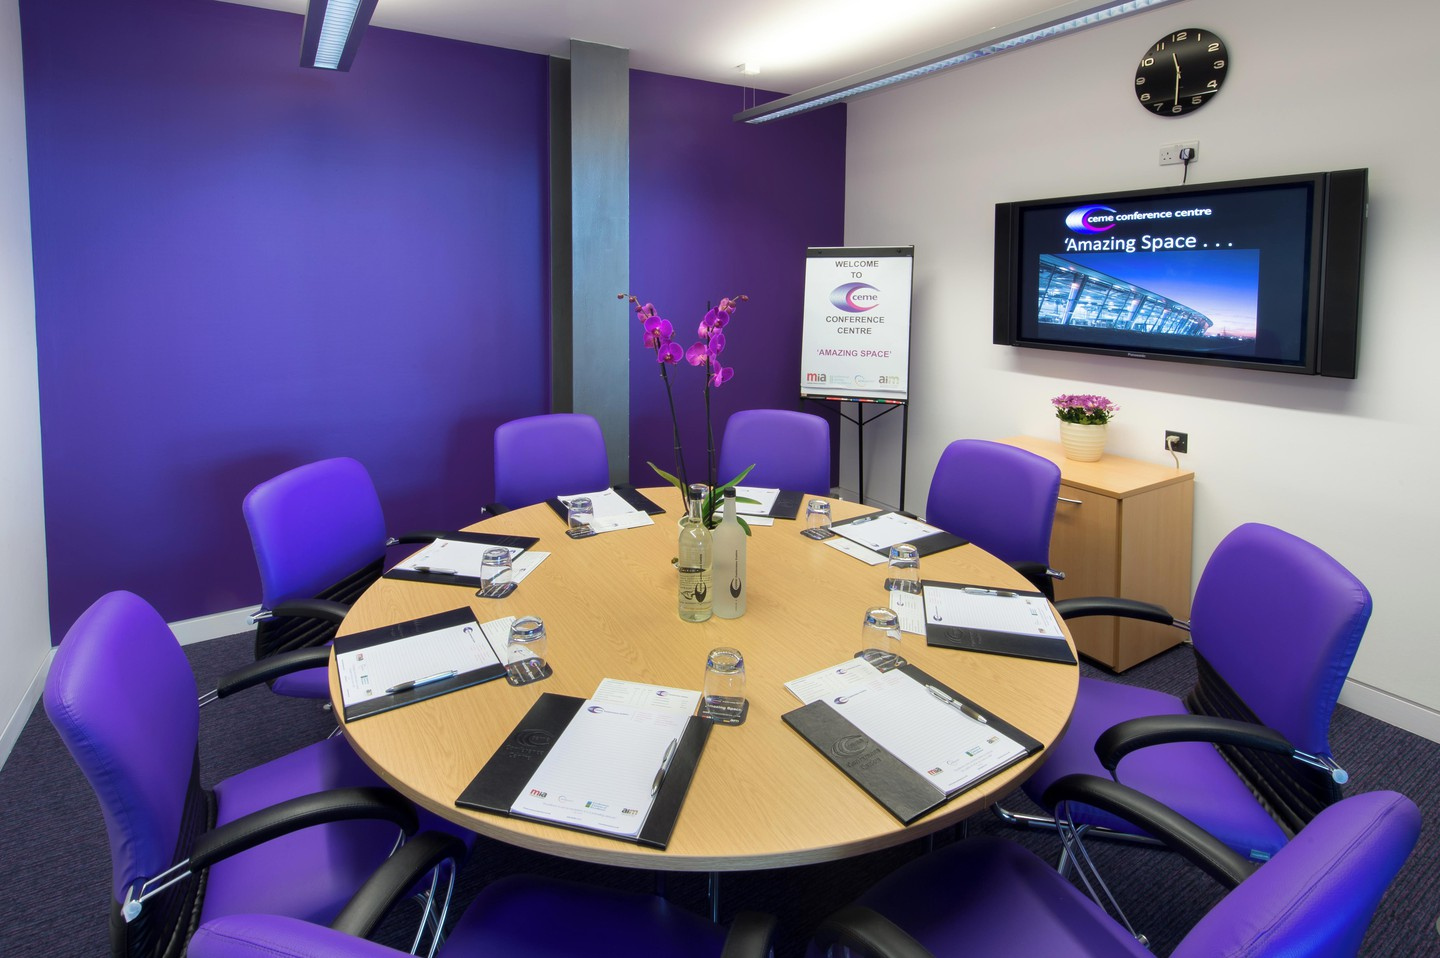 Greenhithe training rooms Salle de réunion CEME conference - Small room 183 image 1